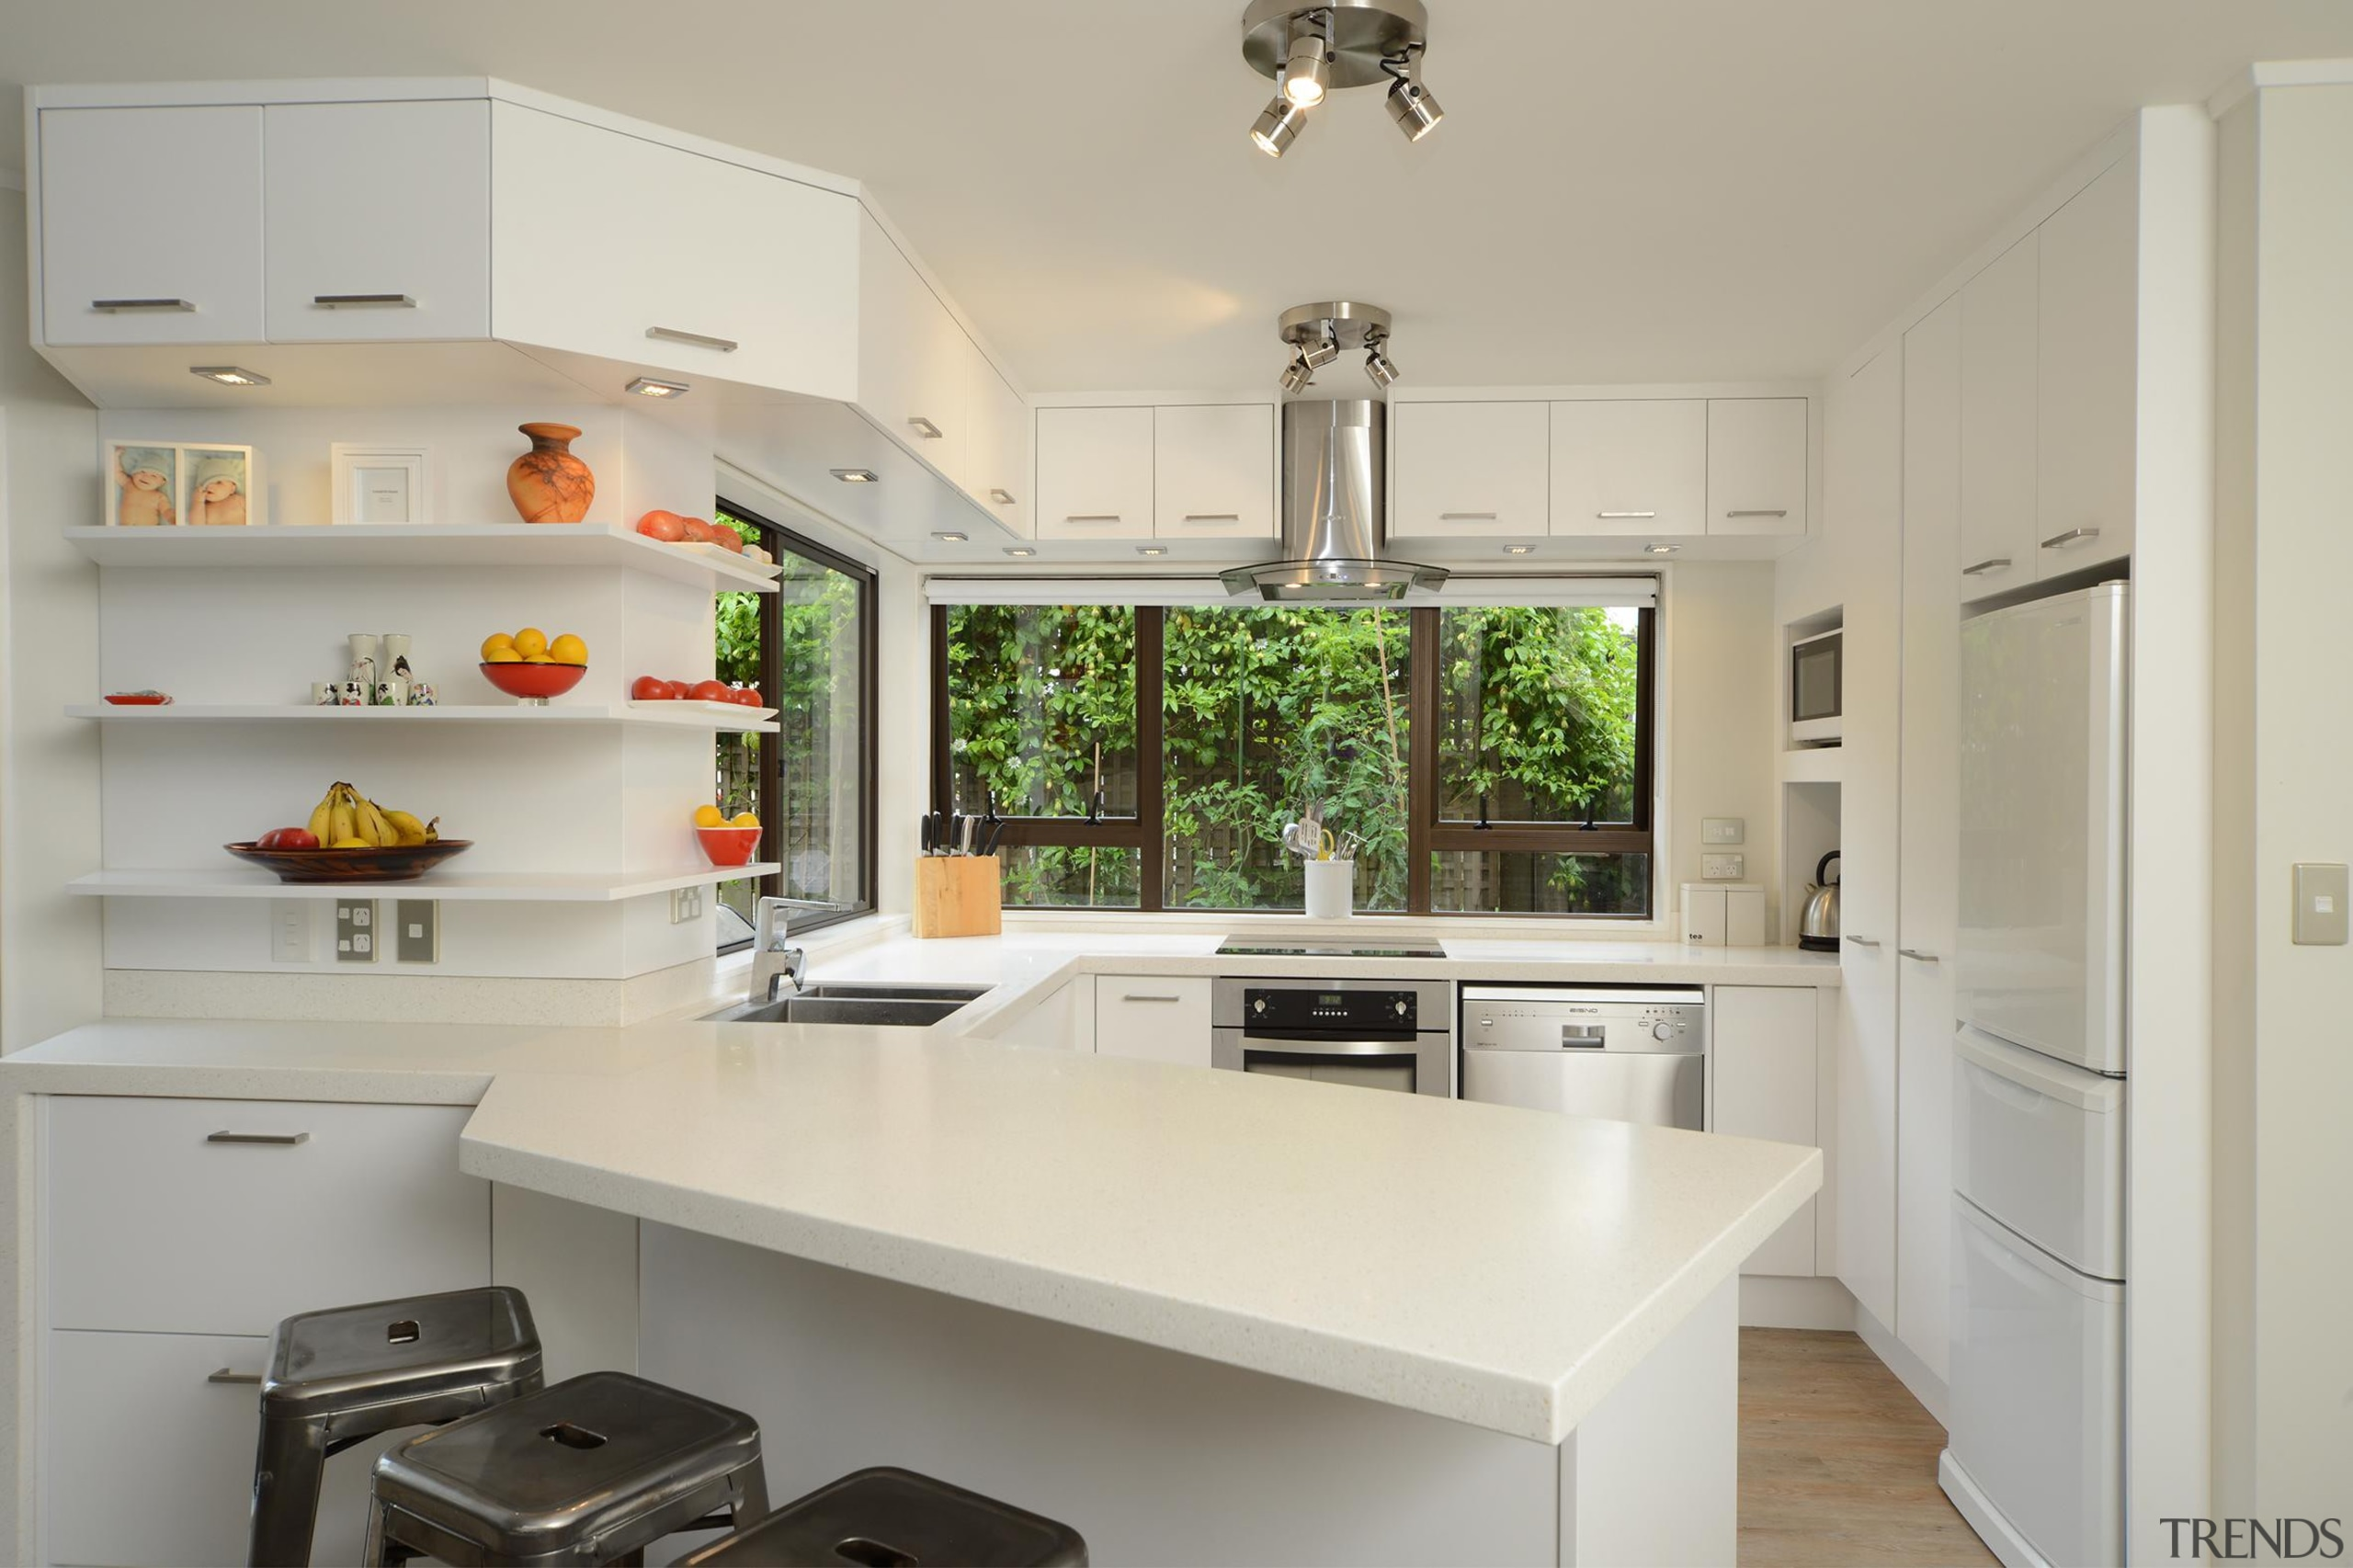 When it comes to shaping forms to follow cabinetry, countertop, cuisine classique, home, interior design, kitchen, room, gray